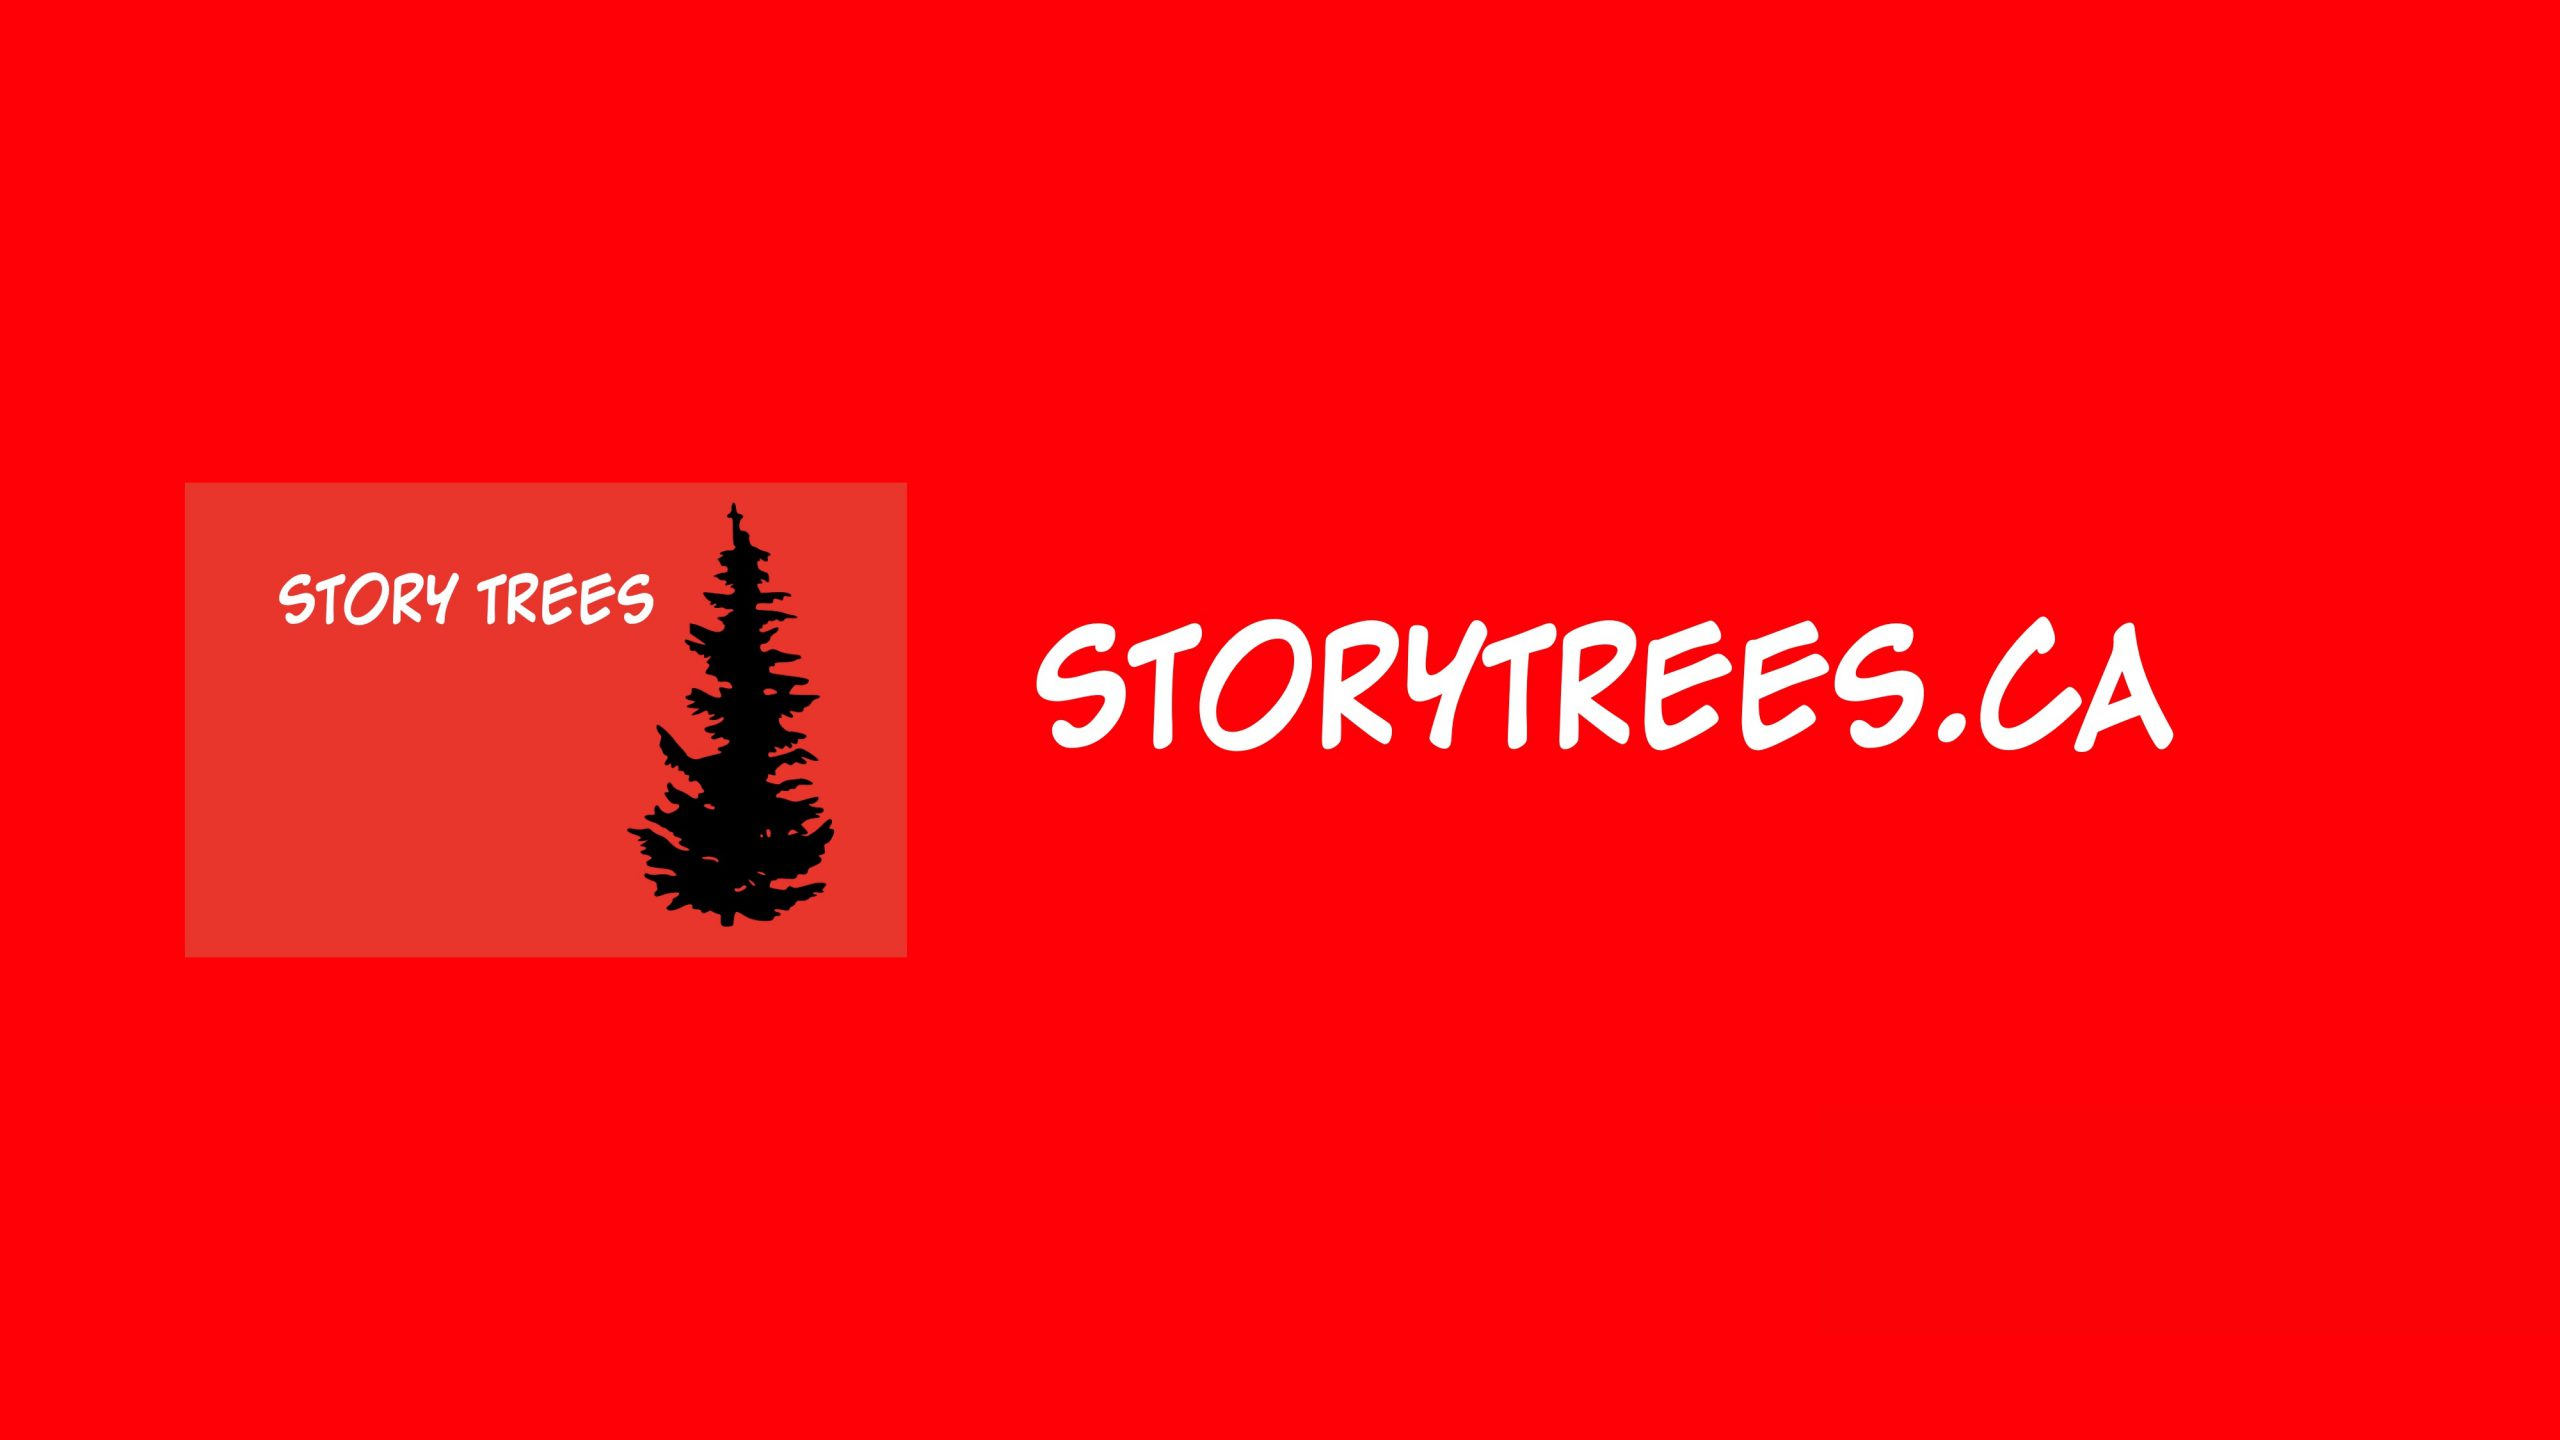 """Story Trees exhibition banner. Bright red background featuring a small, black silhouette of a pine tree and text in white that reads """"STORY TREES"""" (left) and """"STORYTREES.CA"""" (right)."""